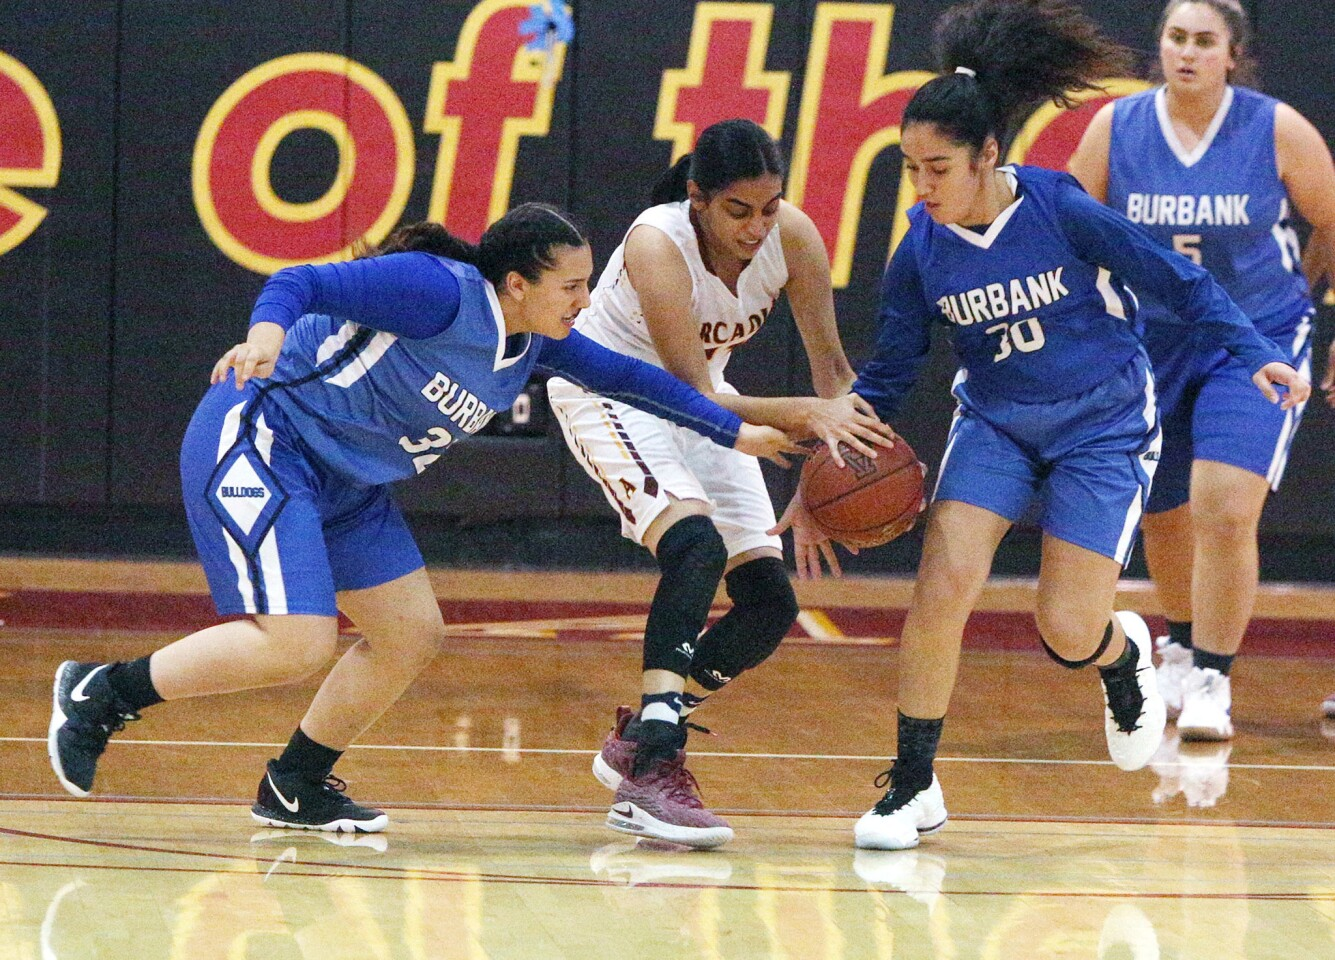 Photo Gallery: Burbank vs. Arcadia Pacific League girls' basketball